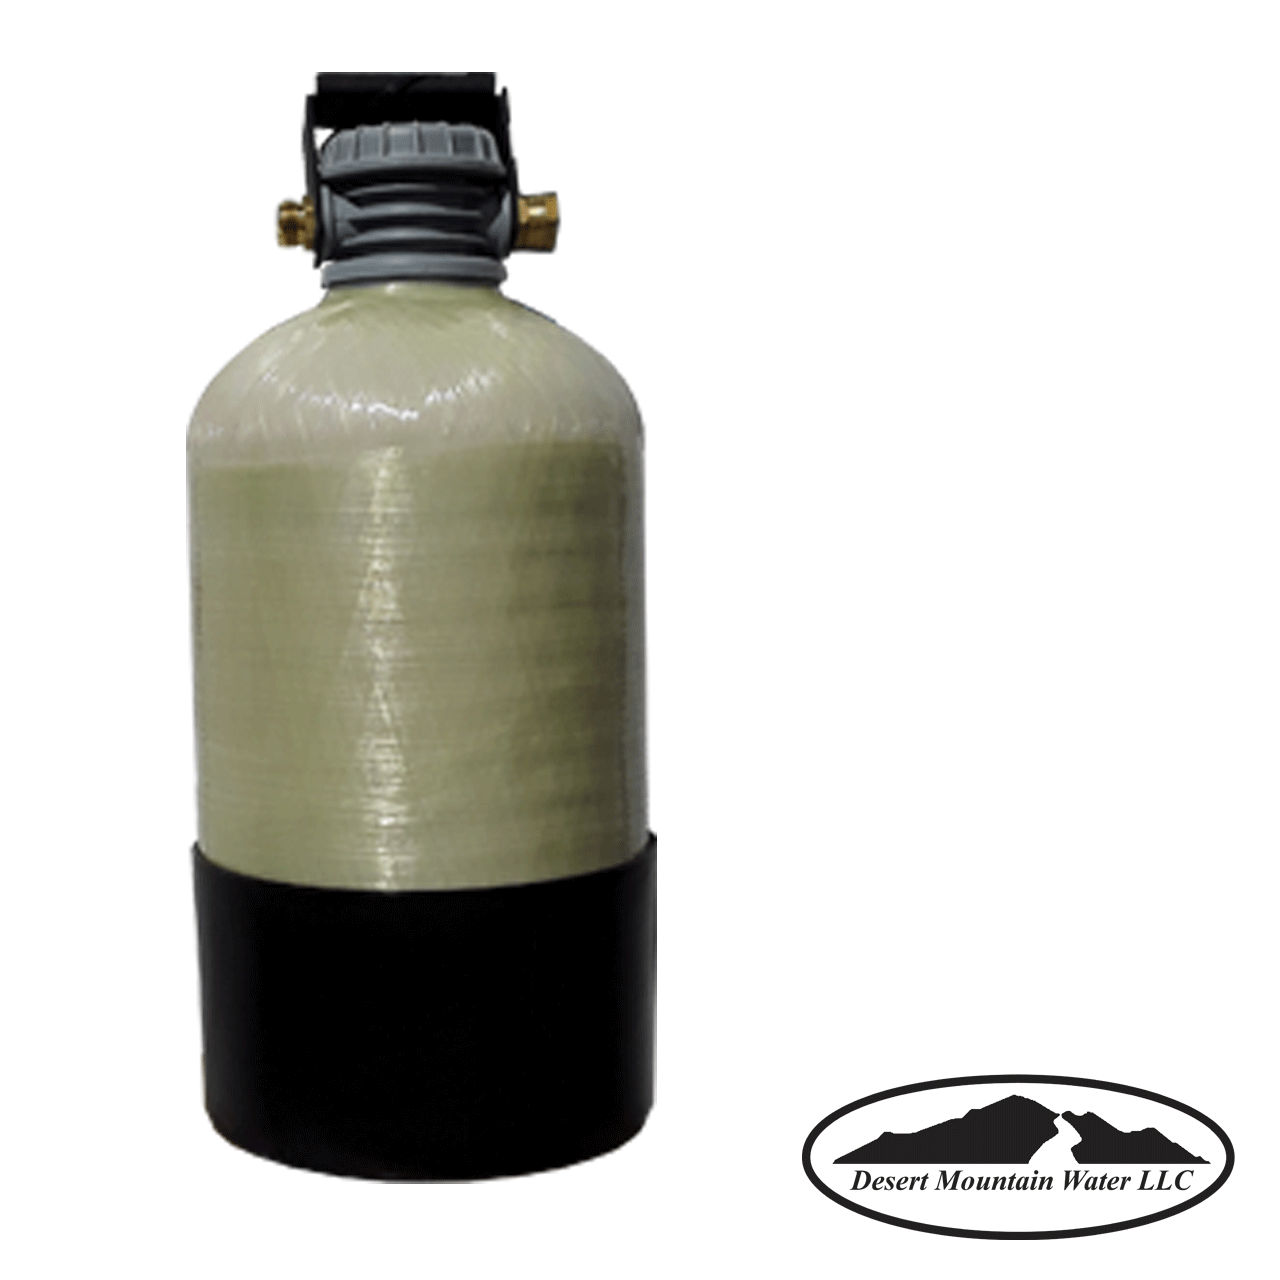 12K Portable Water Softener - Wide